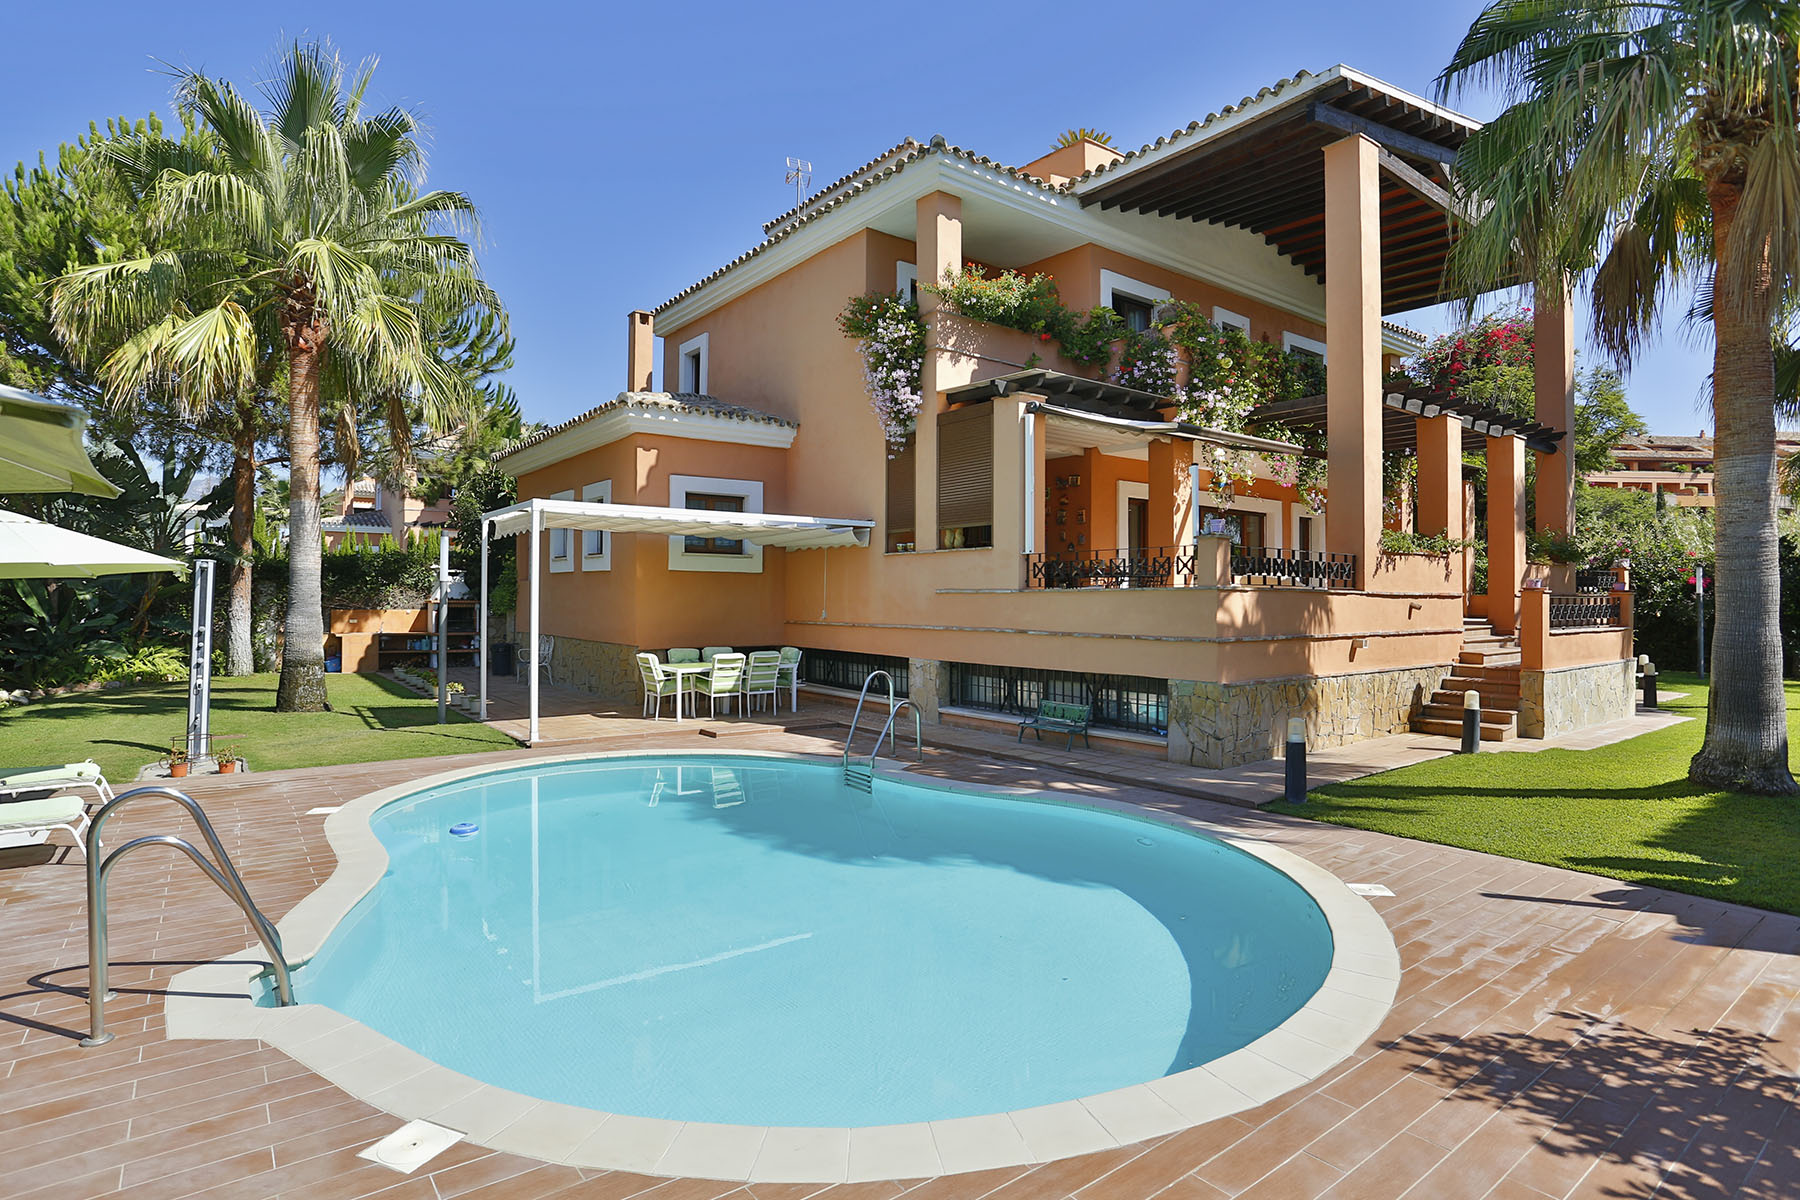 Single Family Home for Sale at Splendid villa walking distance to the beach La Reserva de Los Monteros Marbella, Andalucia 29600 Spain